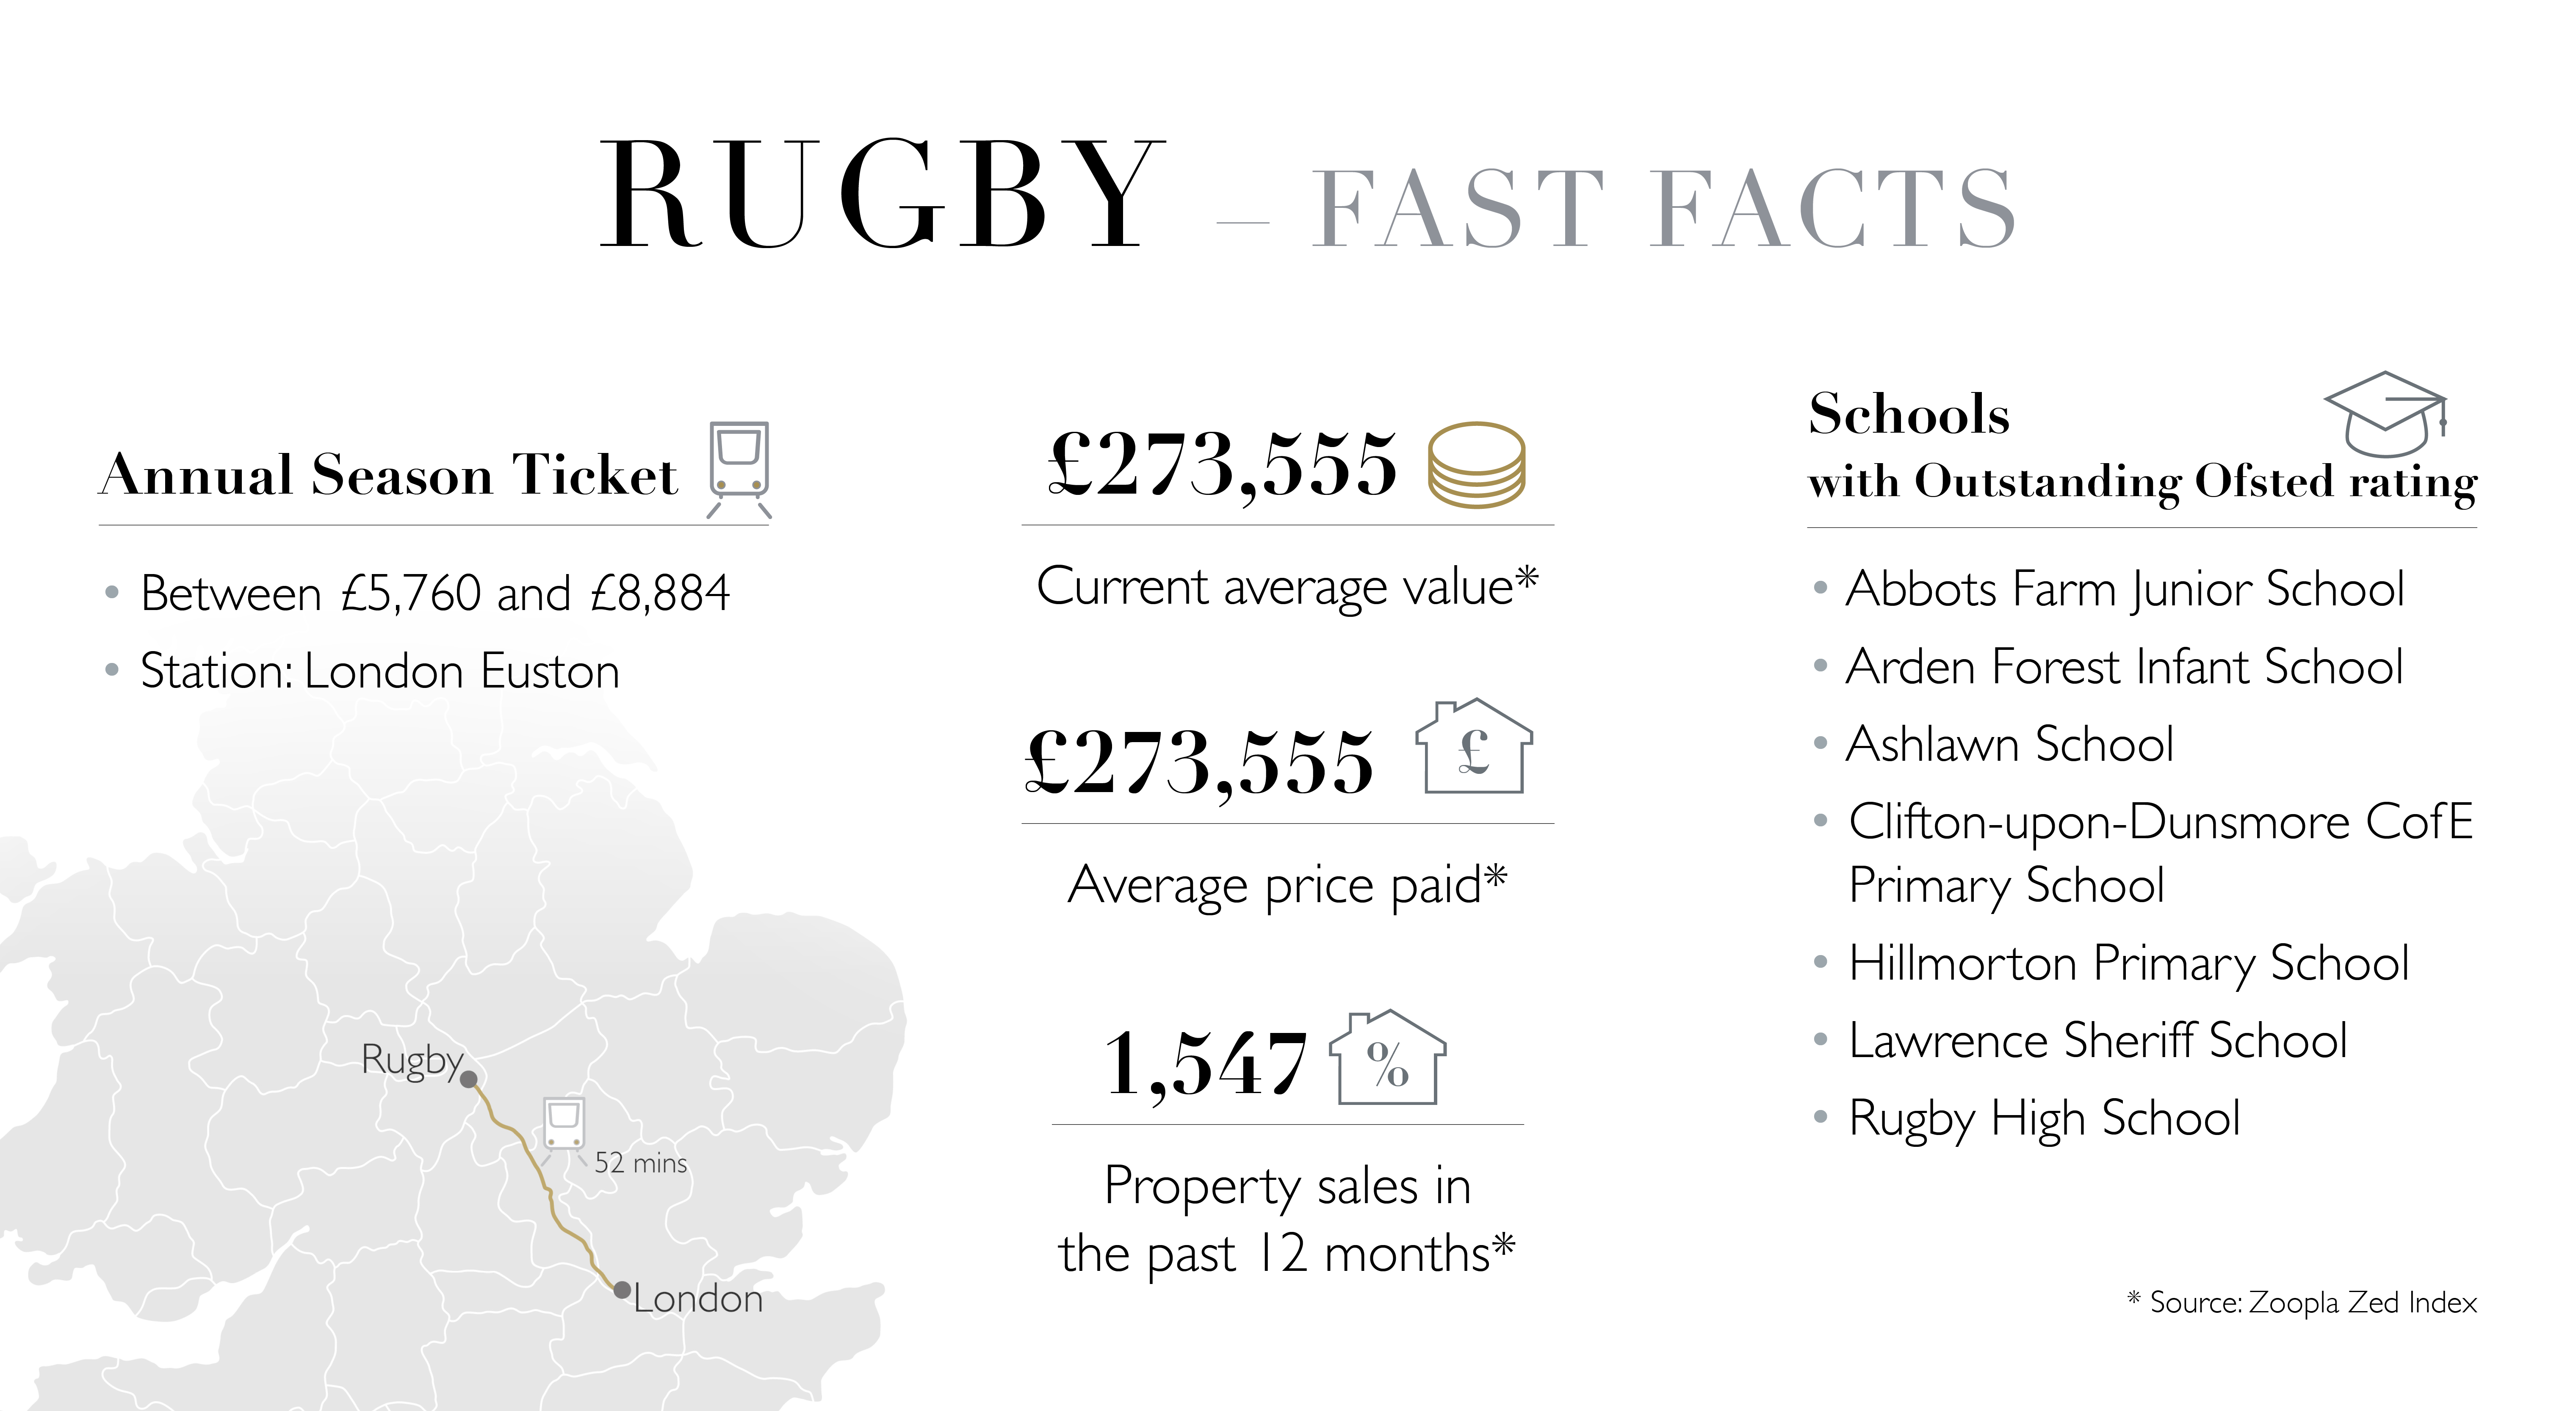 Rugby Fast Facts